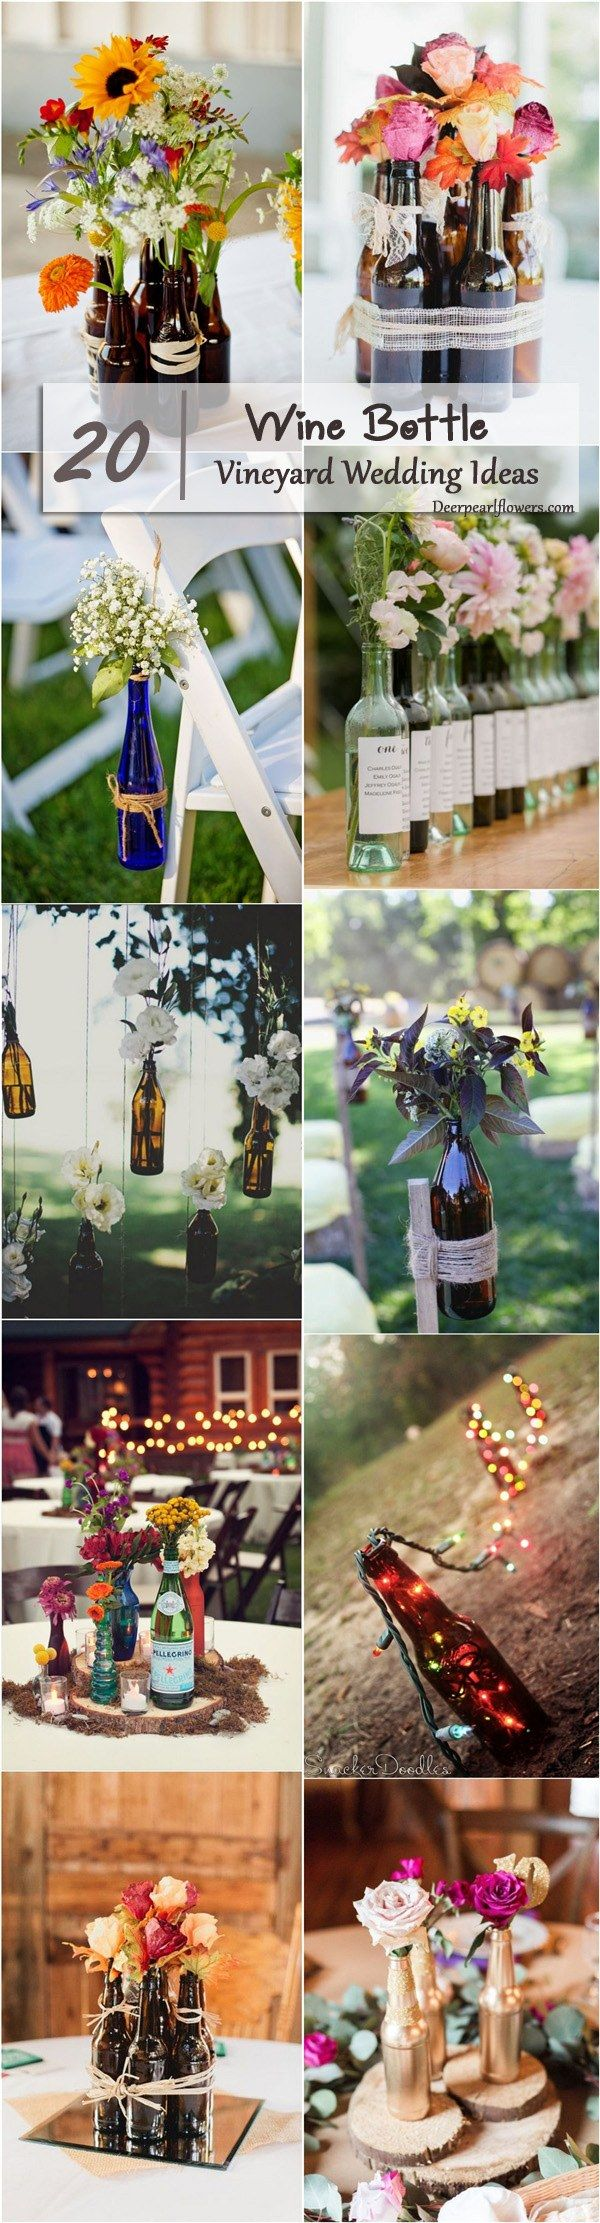 Vineyard Bottle Wedding Decor Ideas / http://www.deerpearlflowers.com/wine-bottle-vineyard-wedding-decor-ideas/